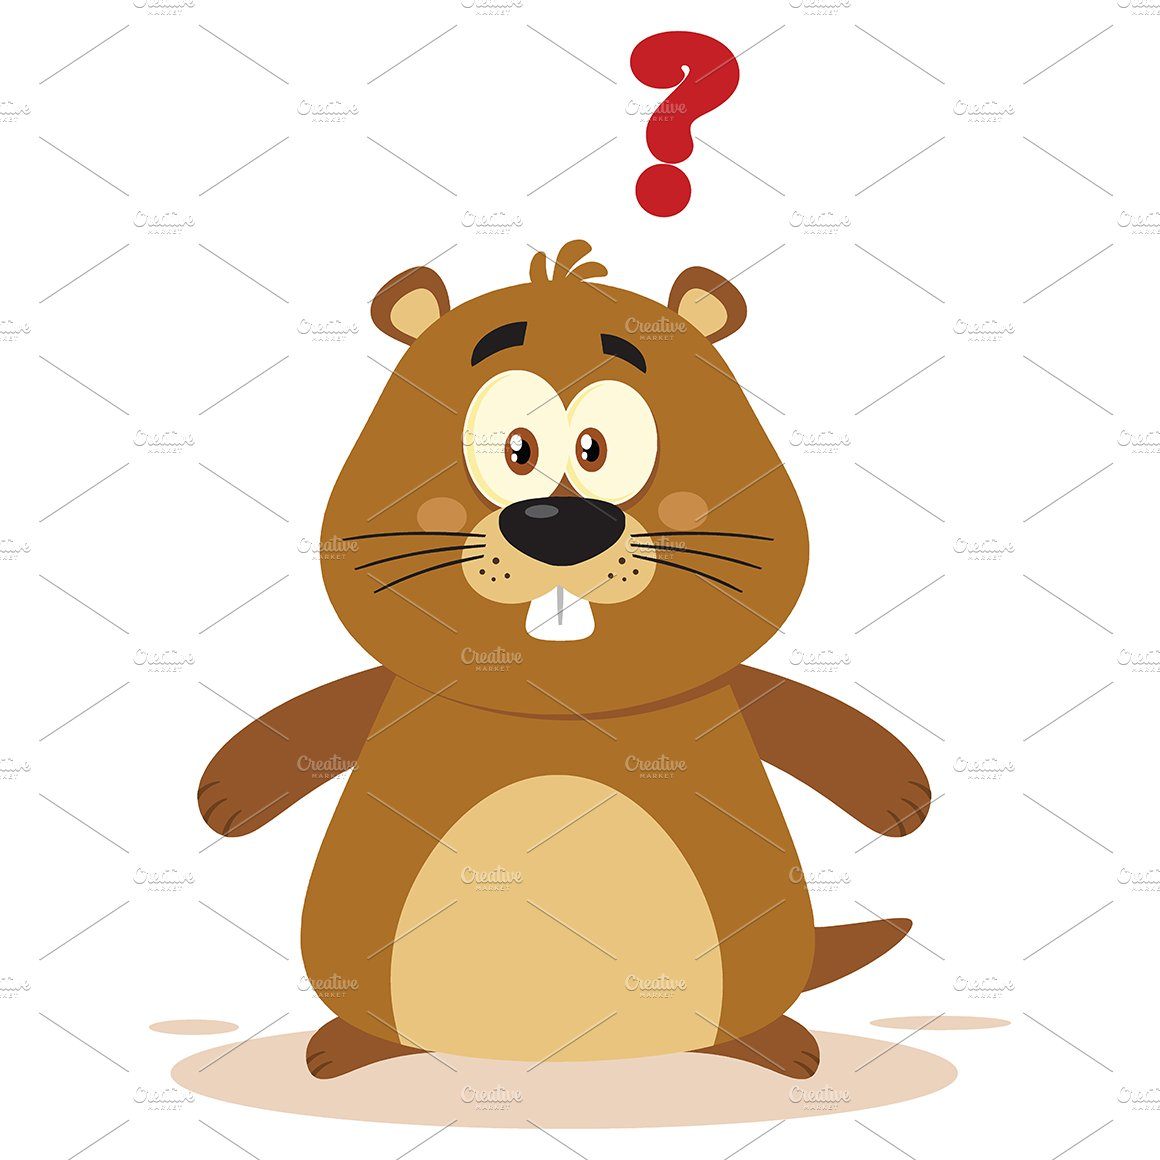 Cute Marmot With Question Mark ~ Illustrations ~ Creative ...